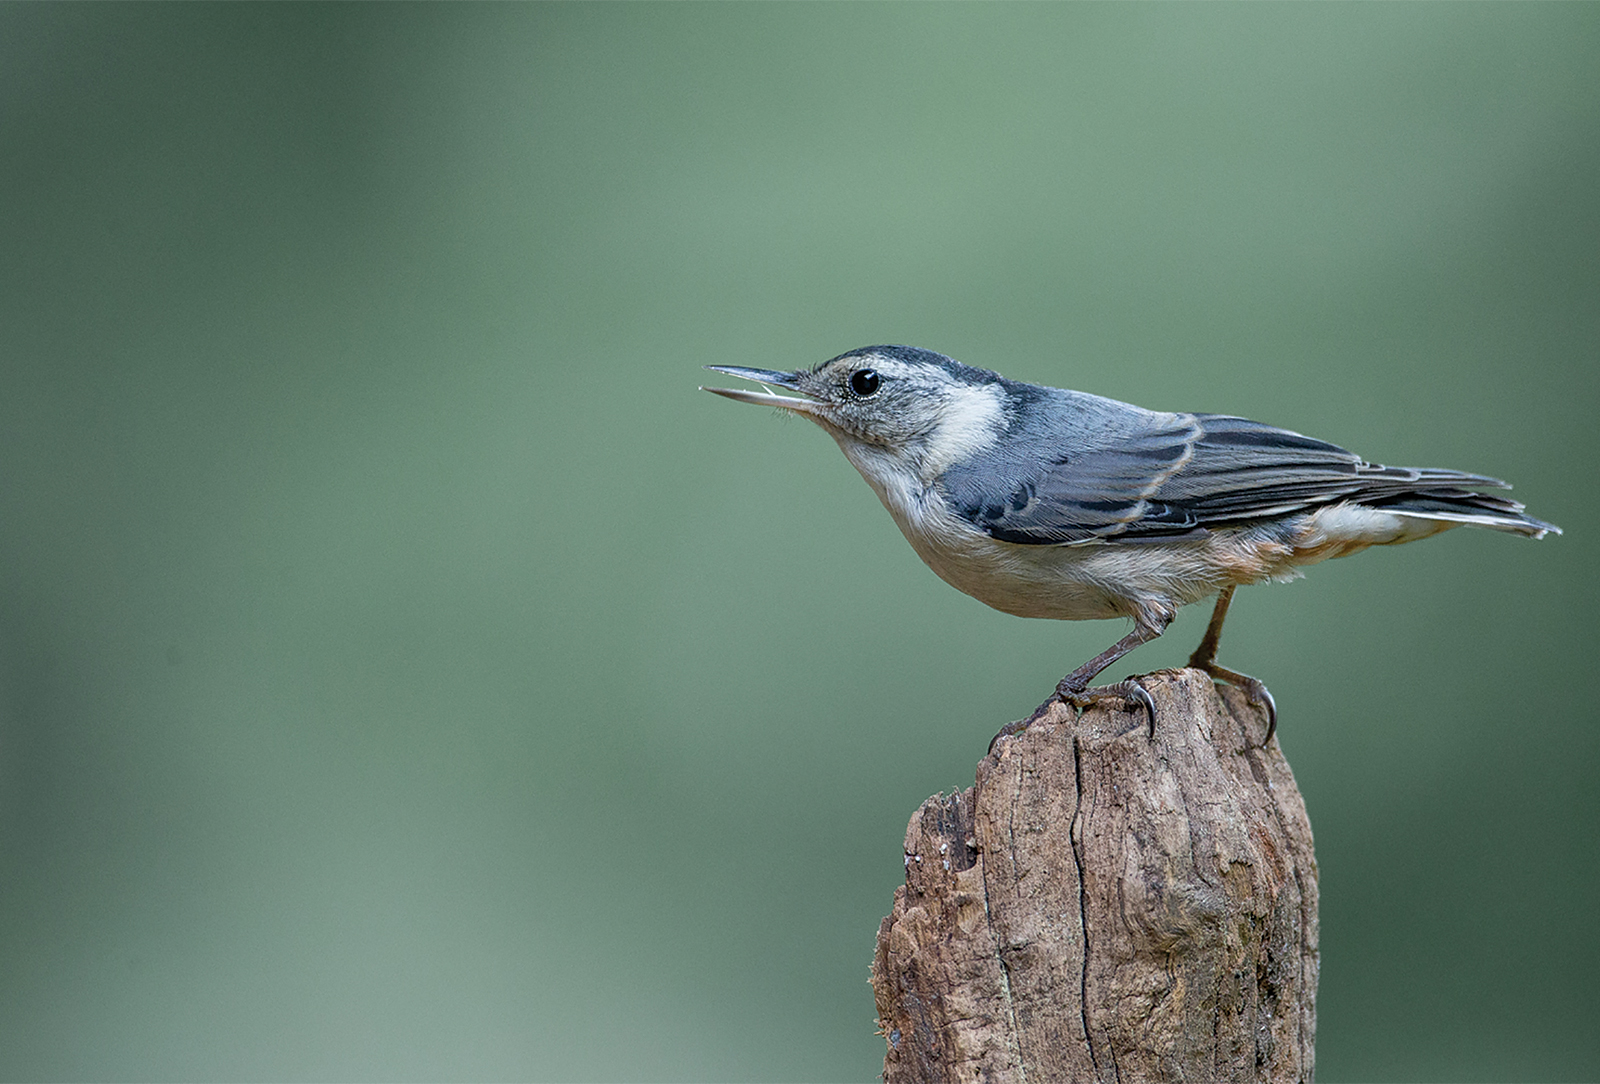 audubon-society-White-breasted-Nuthatch-cashiers-nc